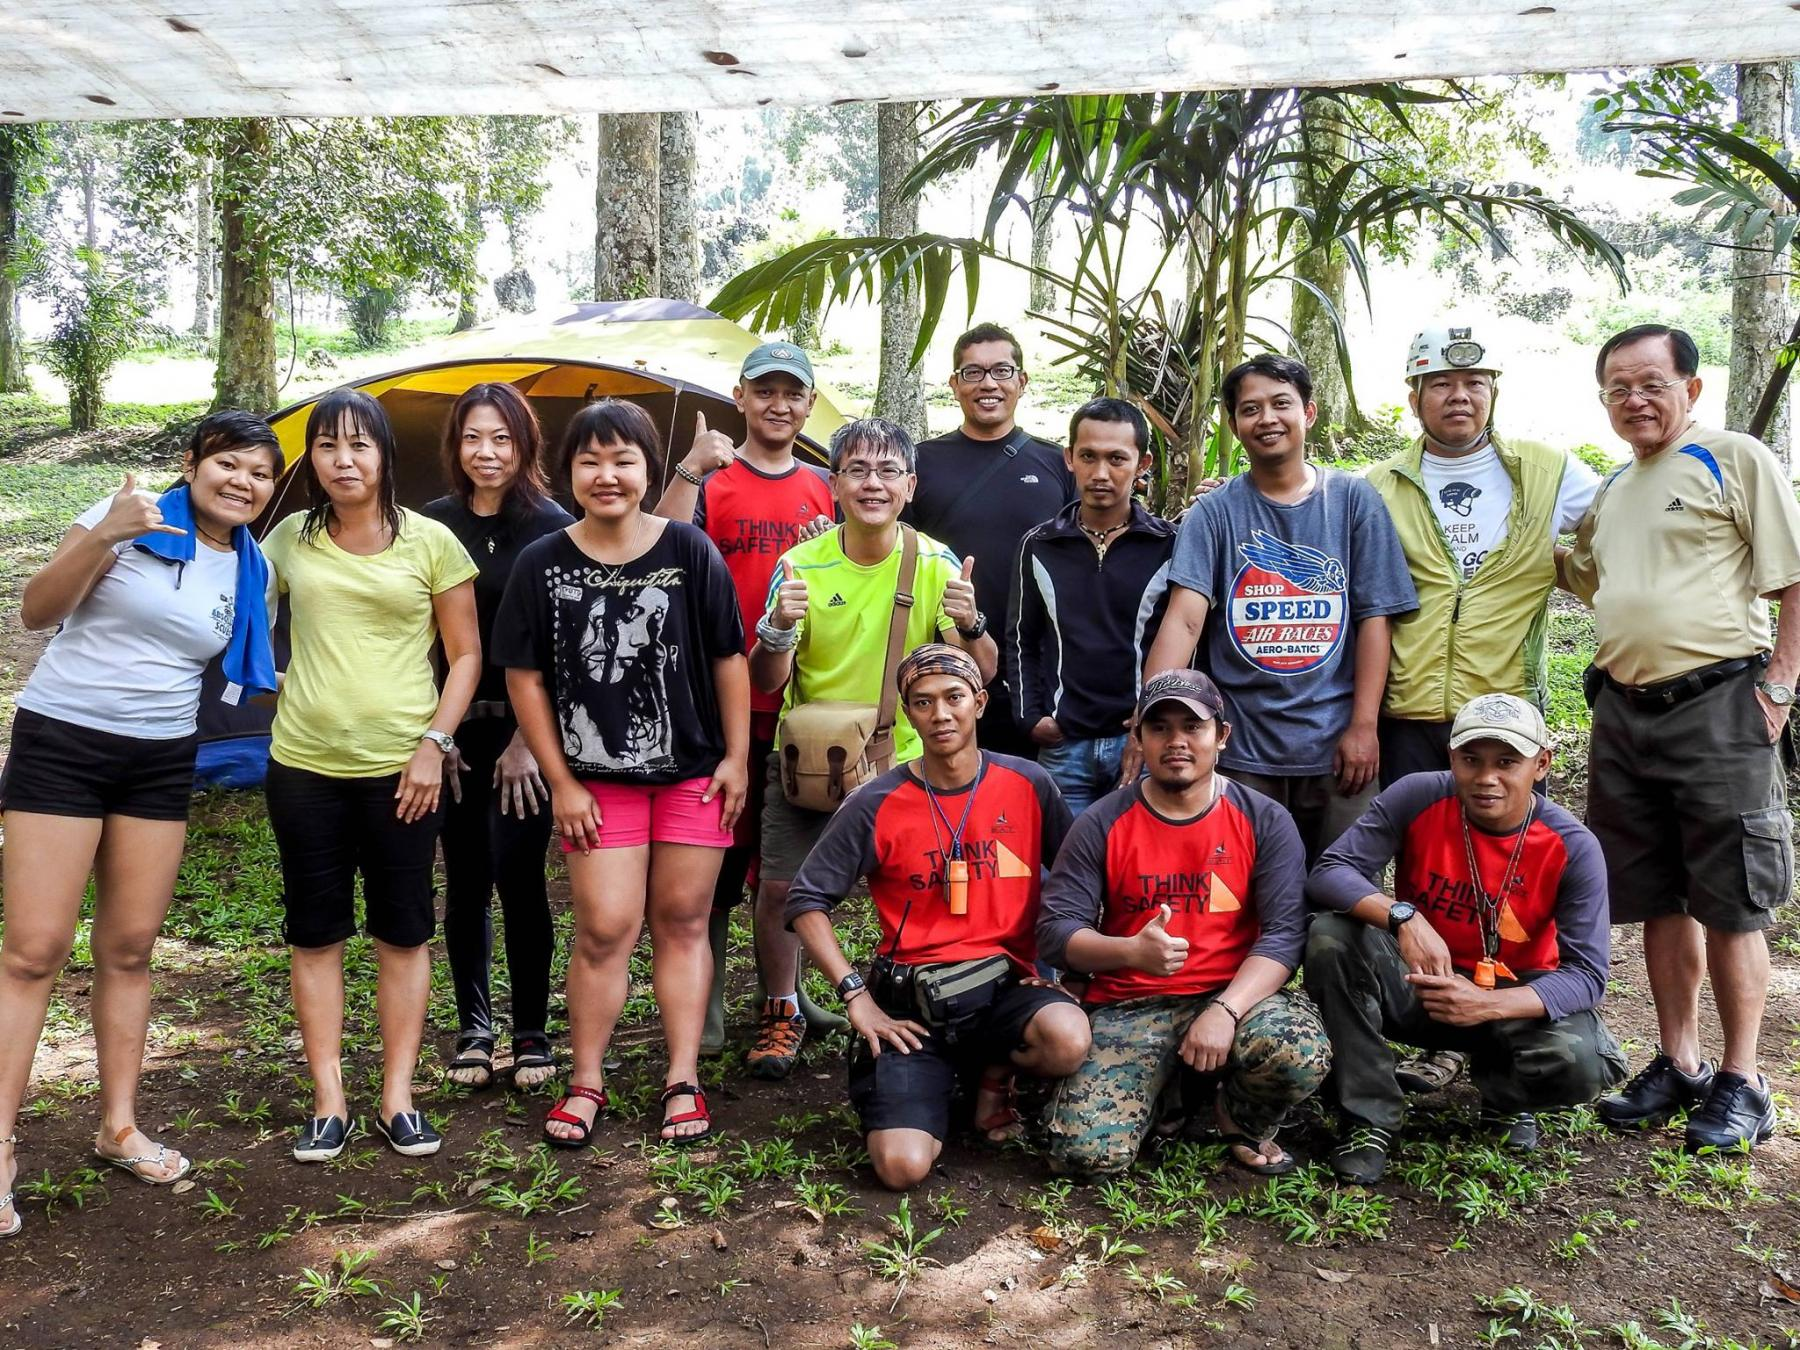 [4D3N] Buniayu Adventure - Vertical Cave and Shower Climbing starting at Sukabumi, West Java, Indonesia